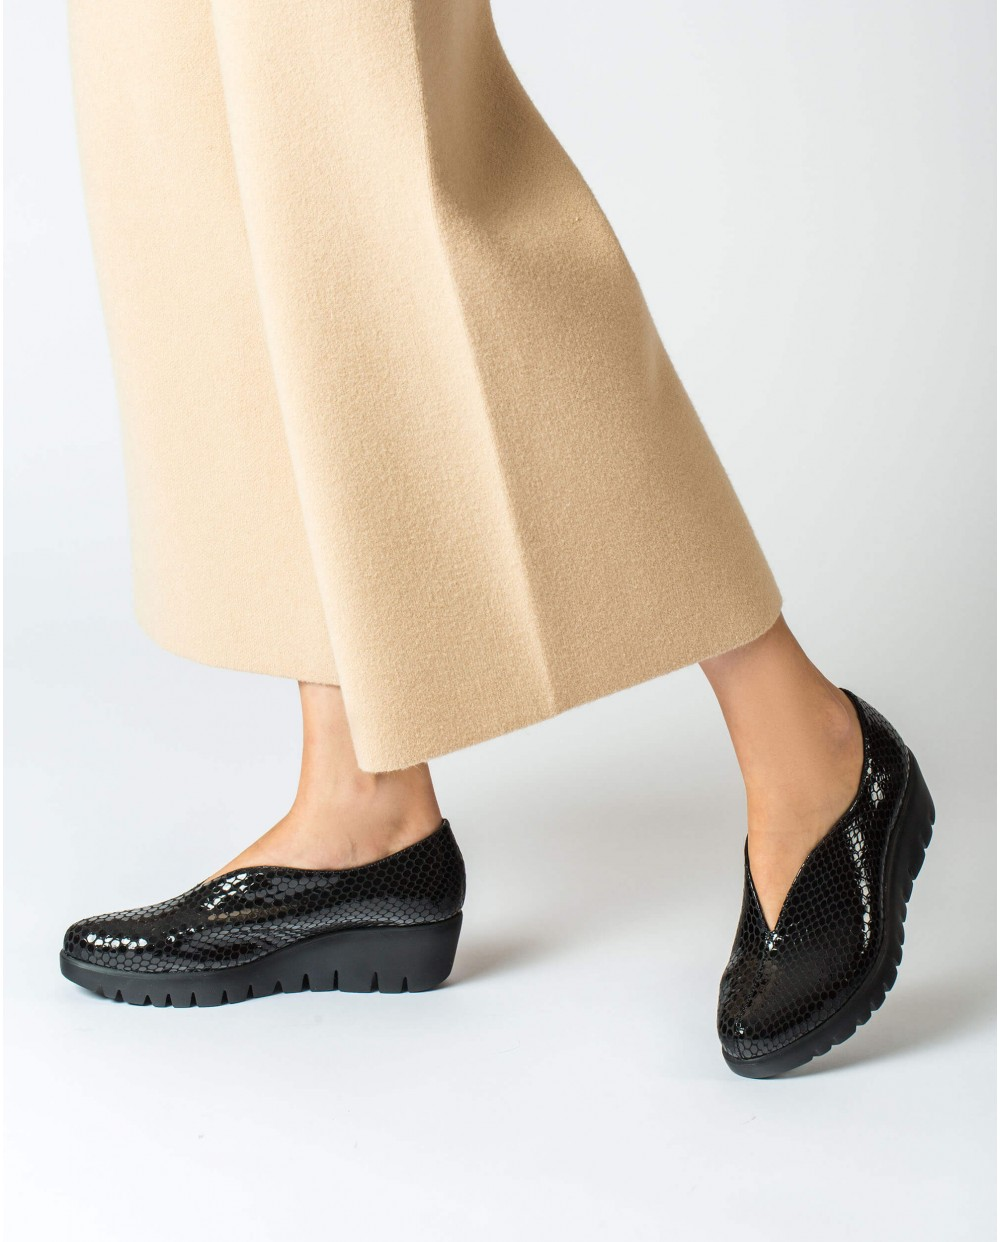 Wonders-Wedges-Black leather shoe